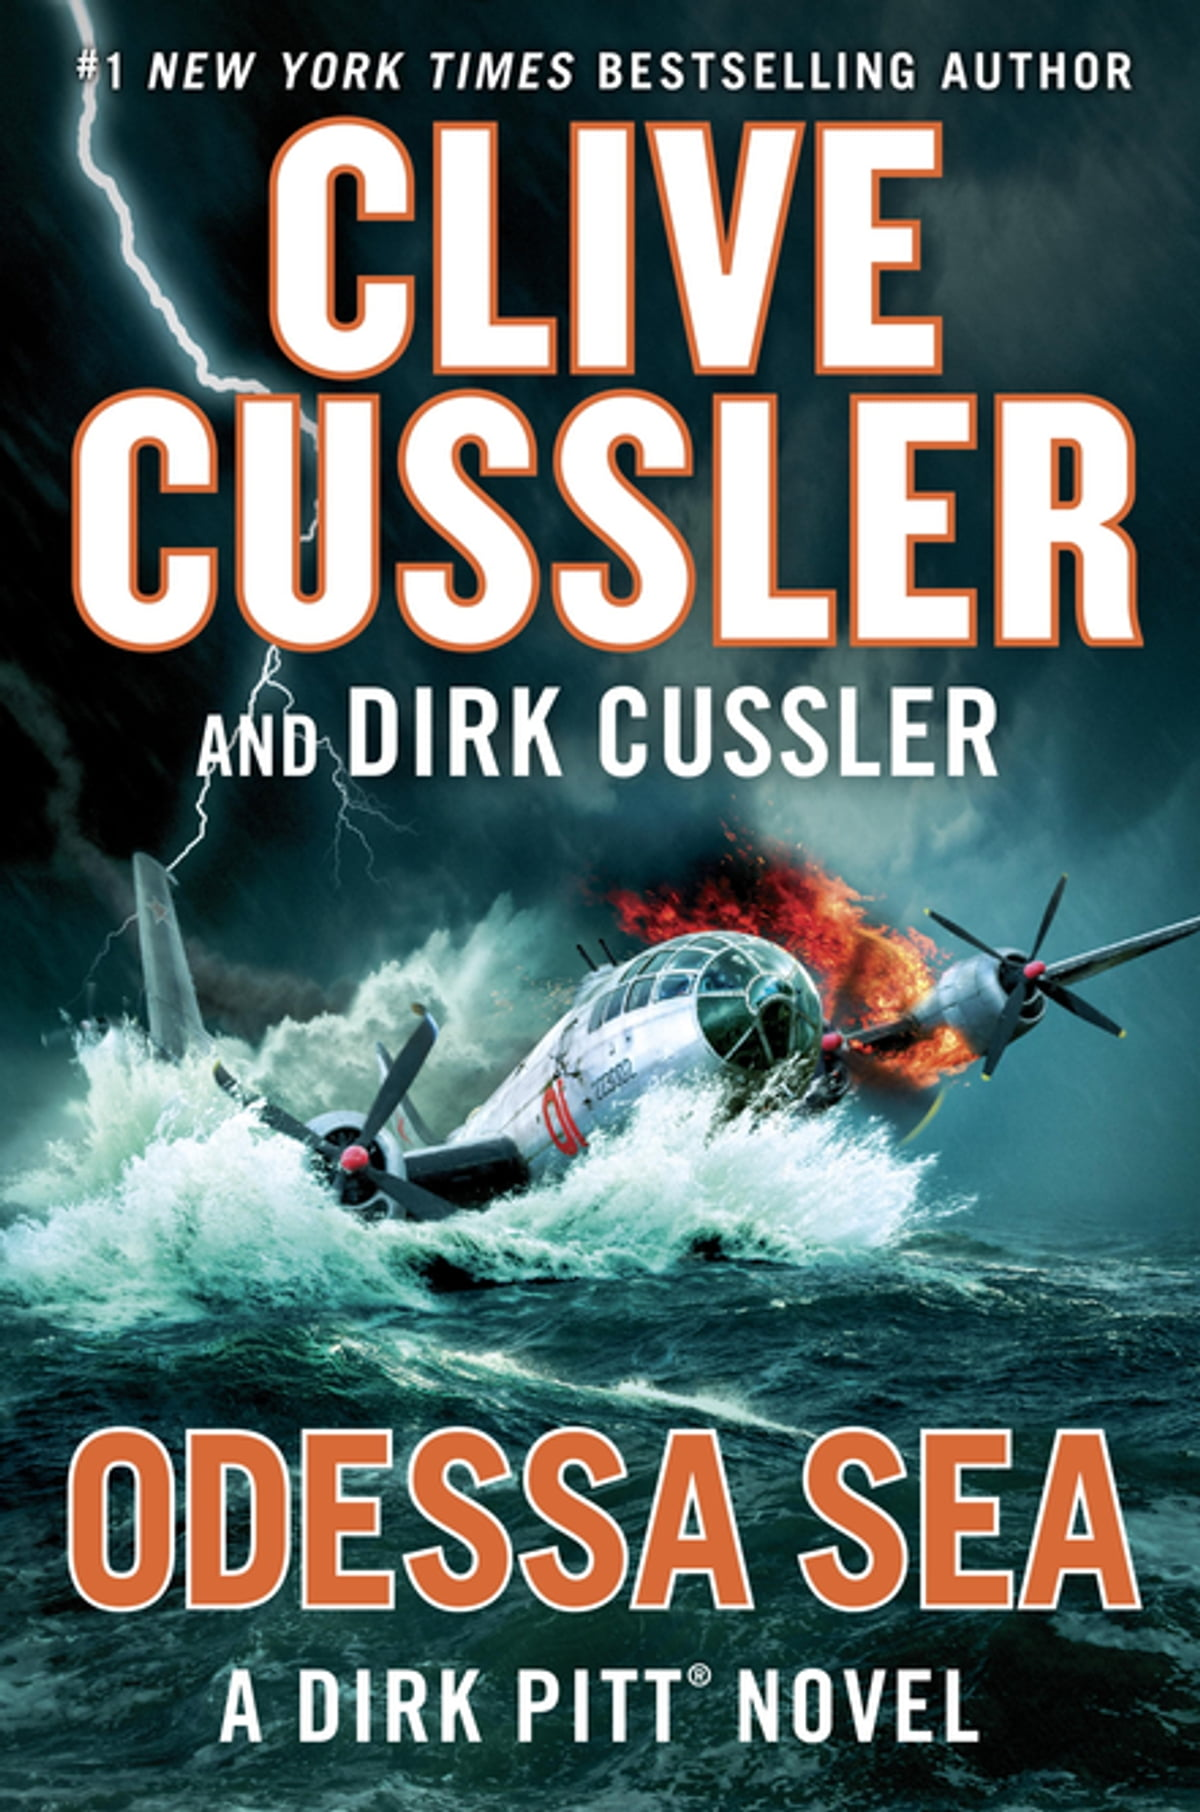 The obsidian chamber ebook by lincoln child 9781455536900 odessa sea ebook by clive cussler dirk cussler fandeluxe Image collections